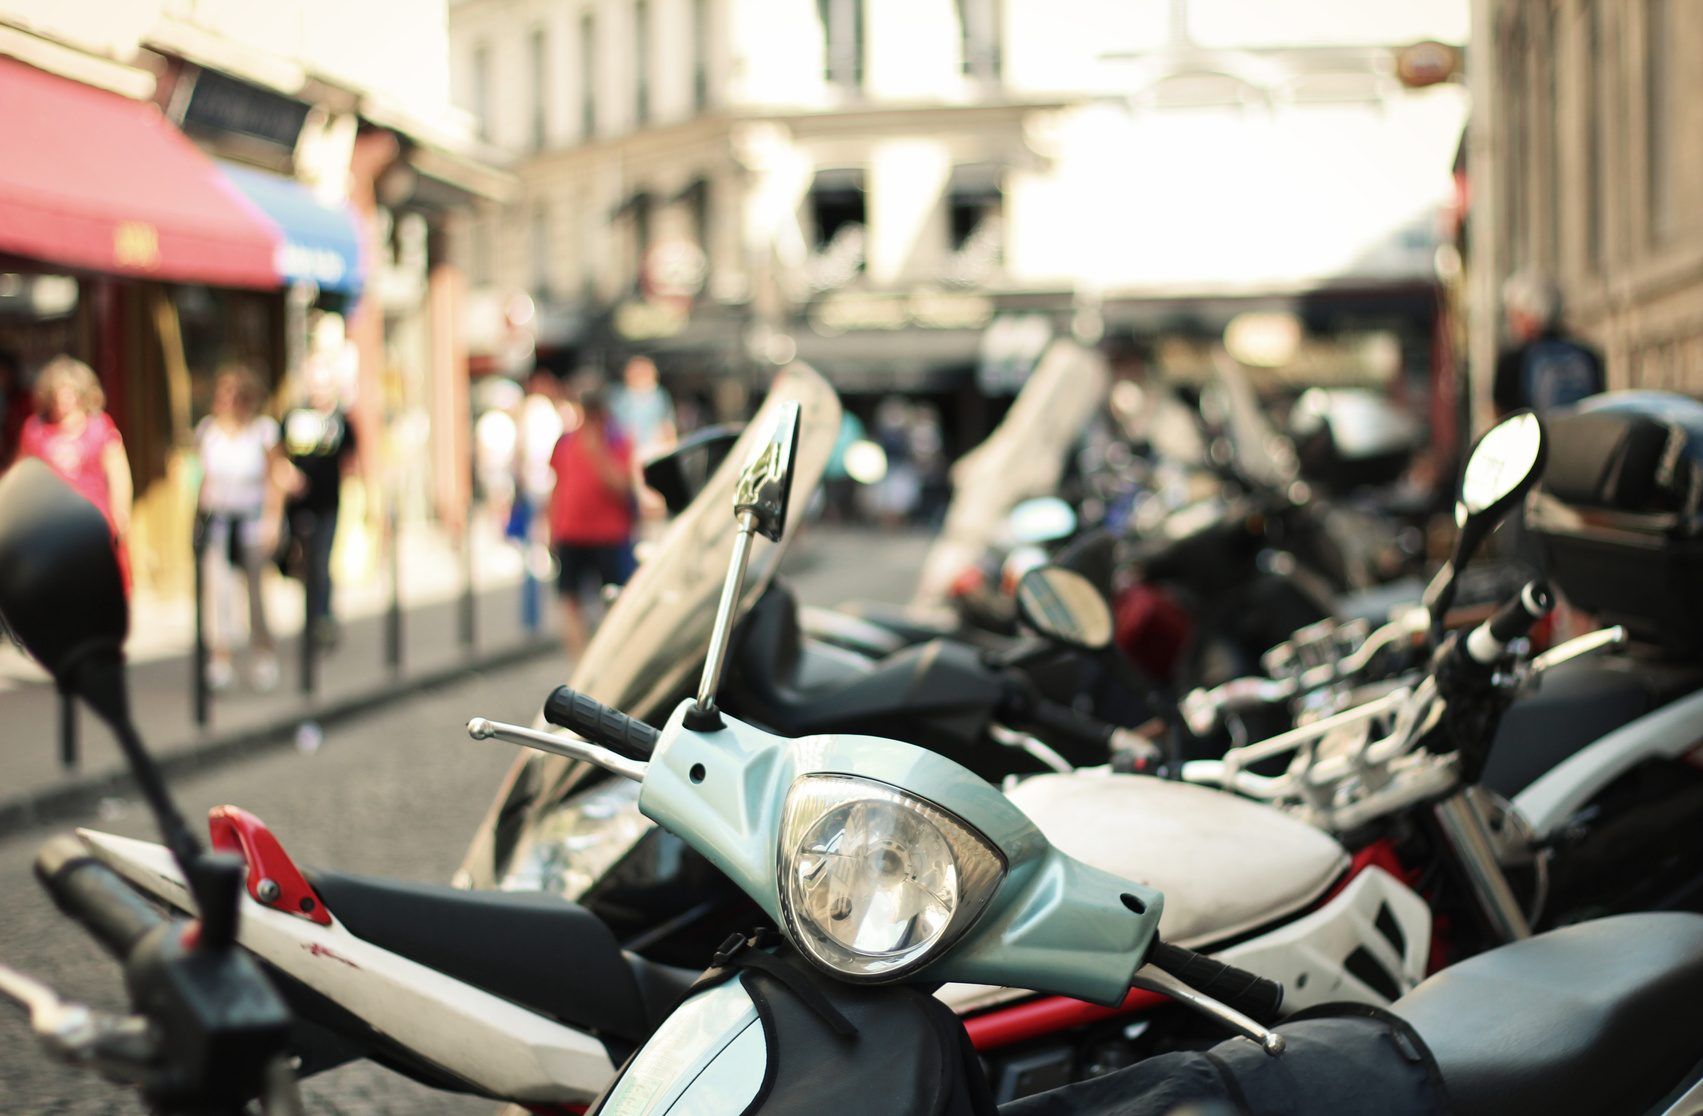 moto et scooter à paris